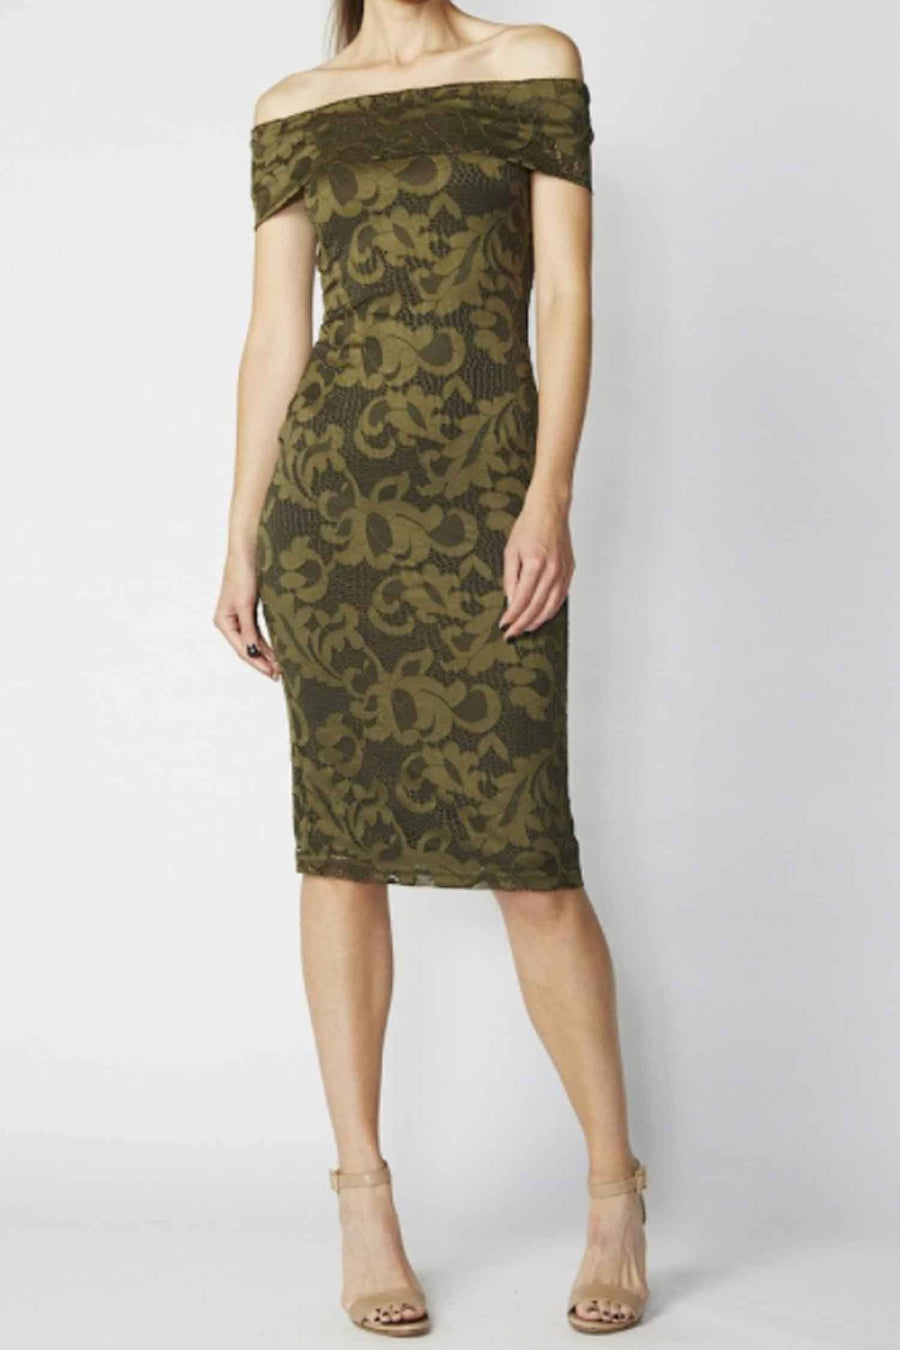 Hari NCL Dress in Khaki